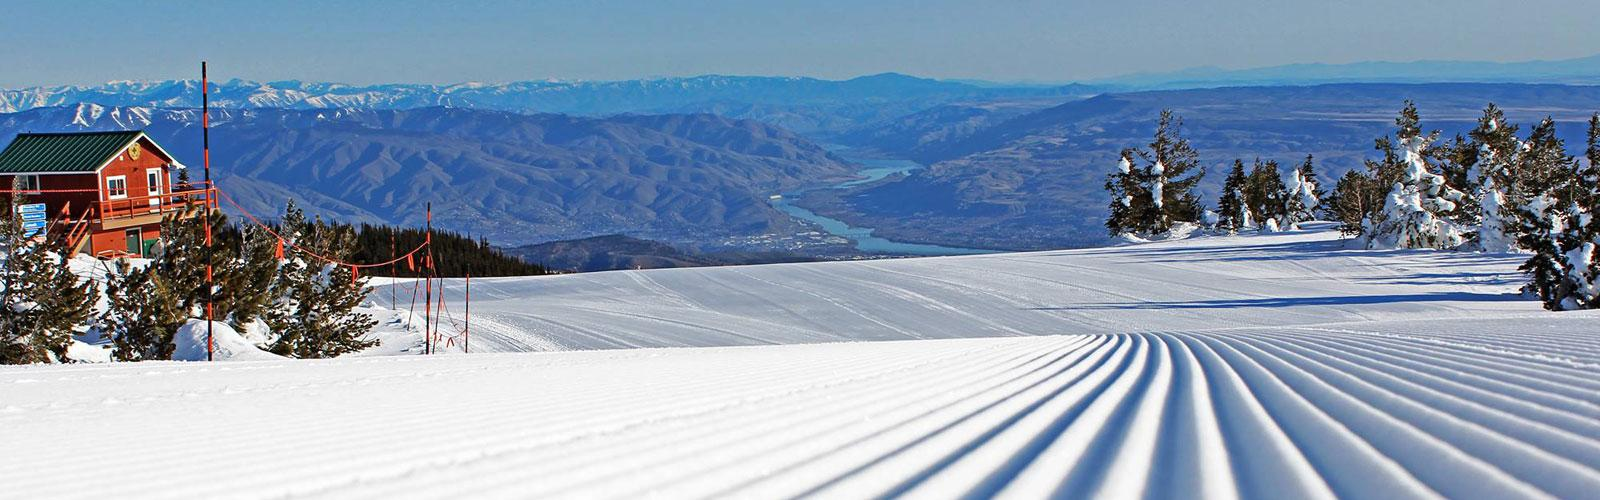 Up close photo of a groomed run with the columbia river in the background.